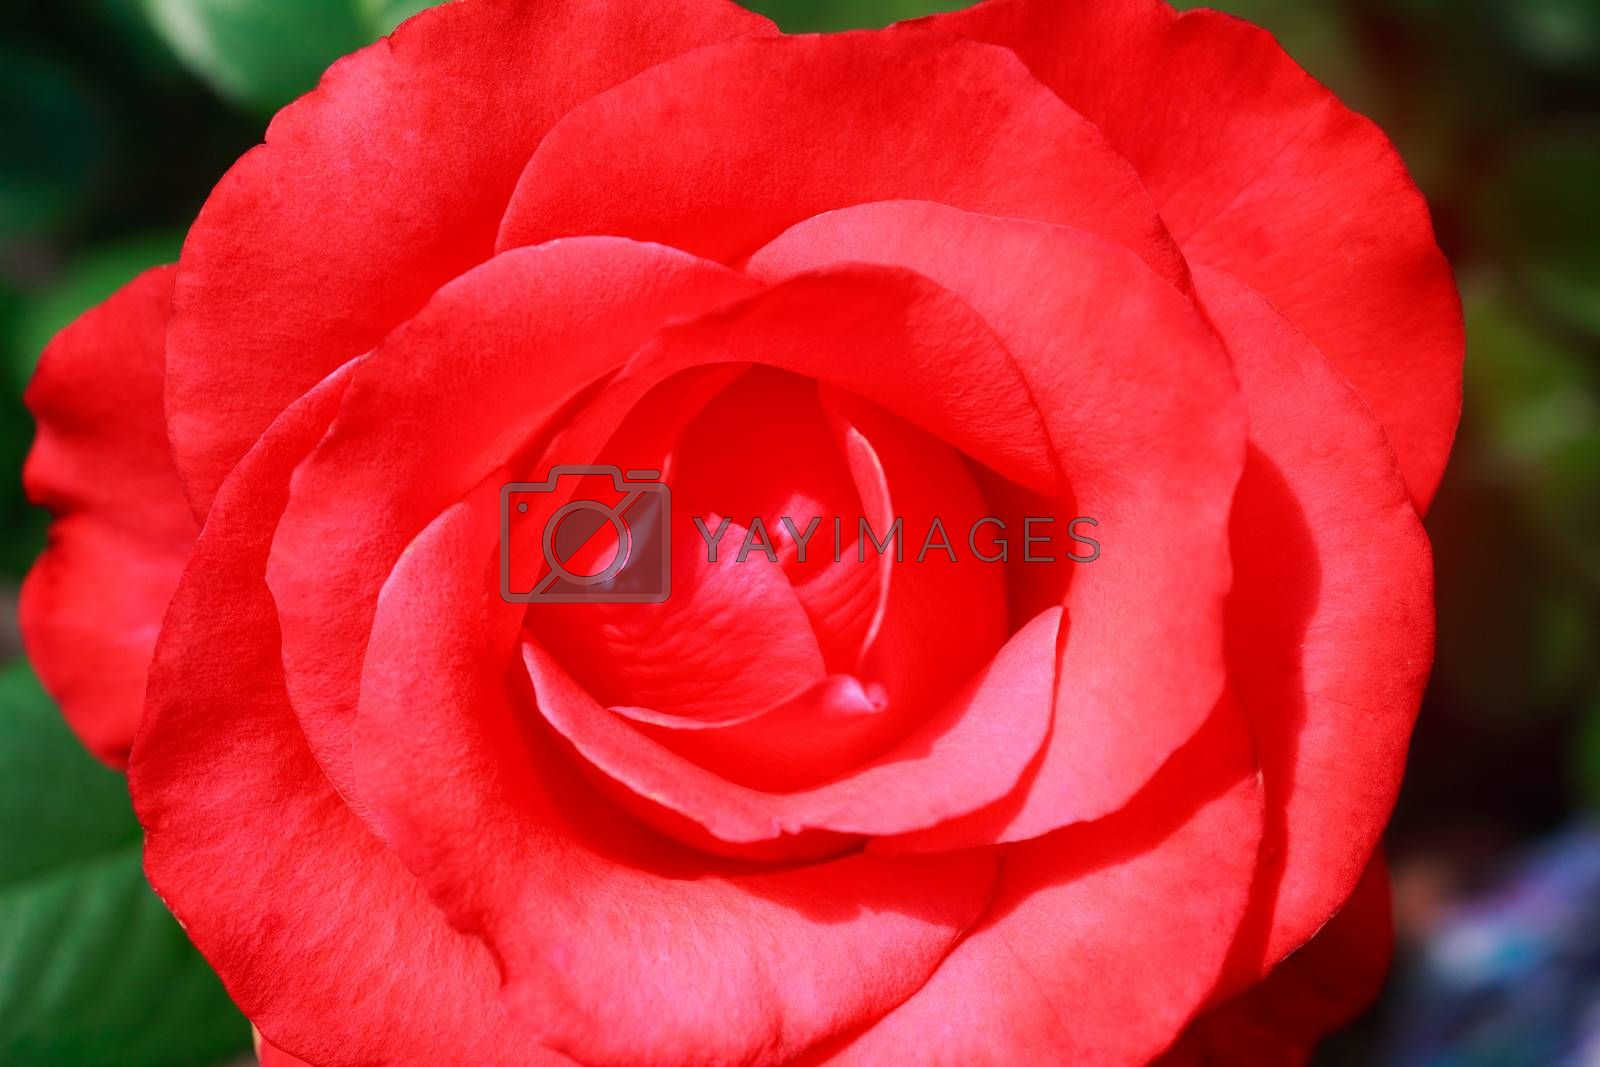 Hot pink flower tea-hybrid rose , blooming in the garden . Photographed close-up on the background of green leaves.